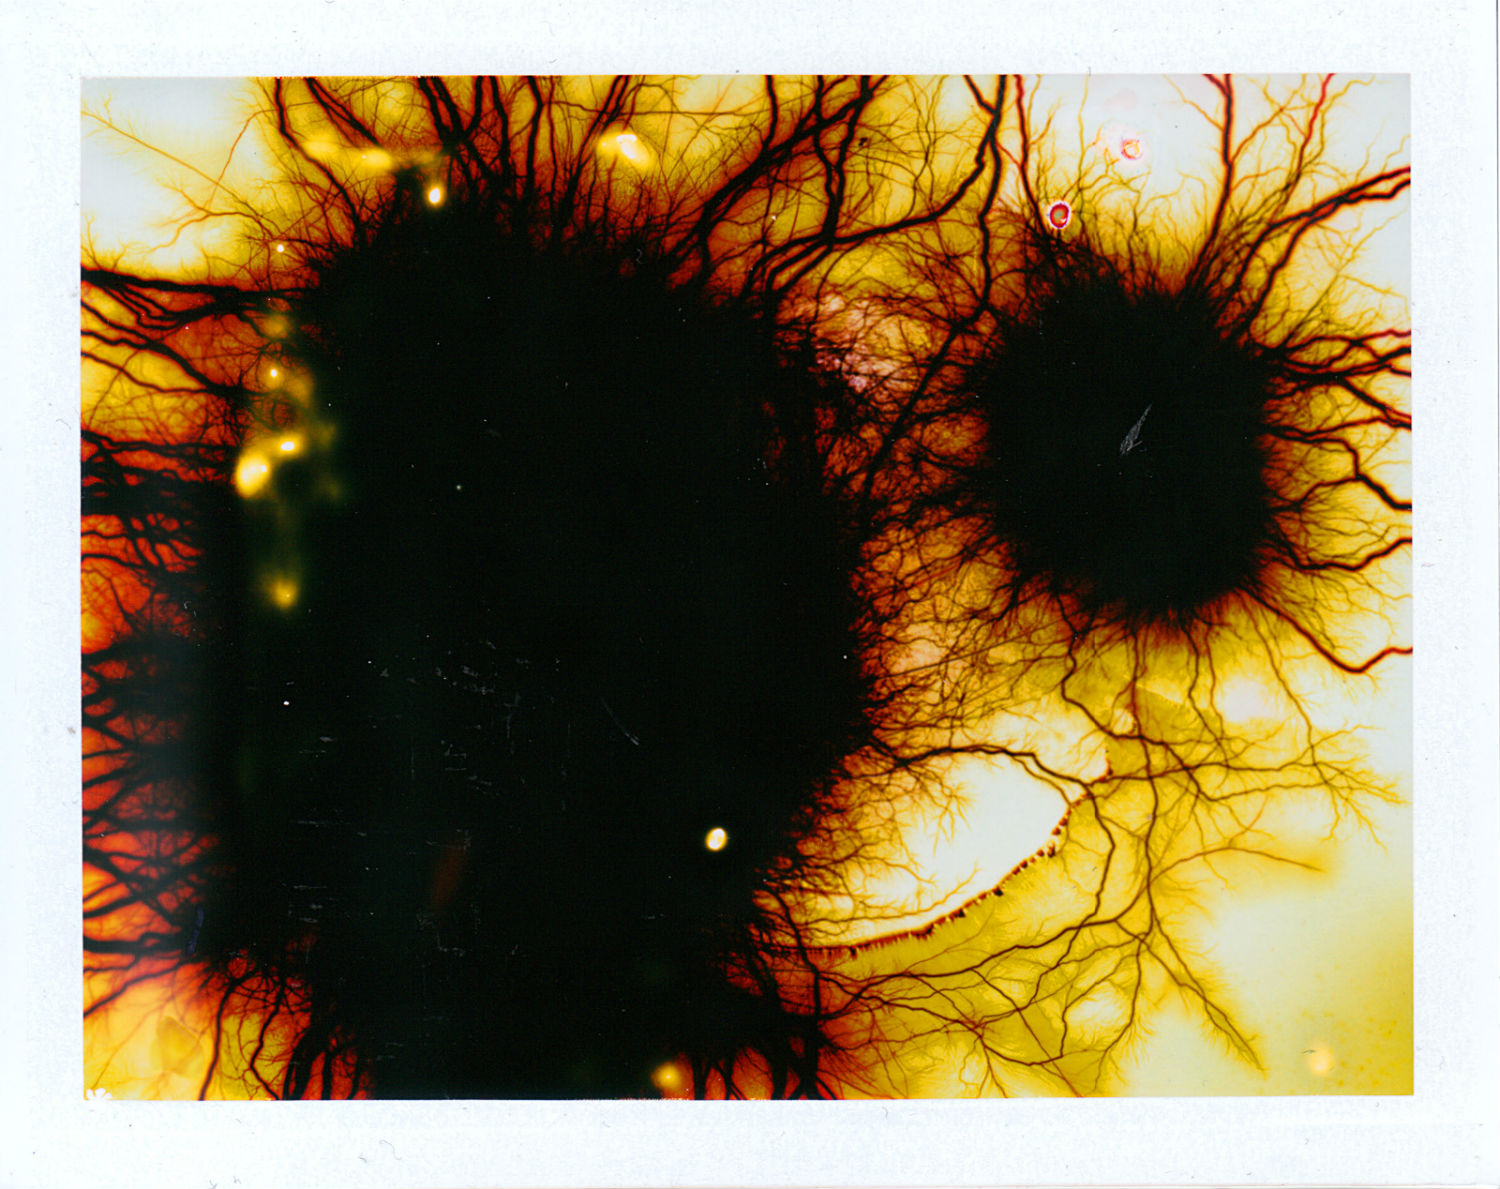 phillip stearns polaroid electric shock color abstract